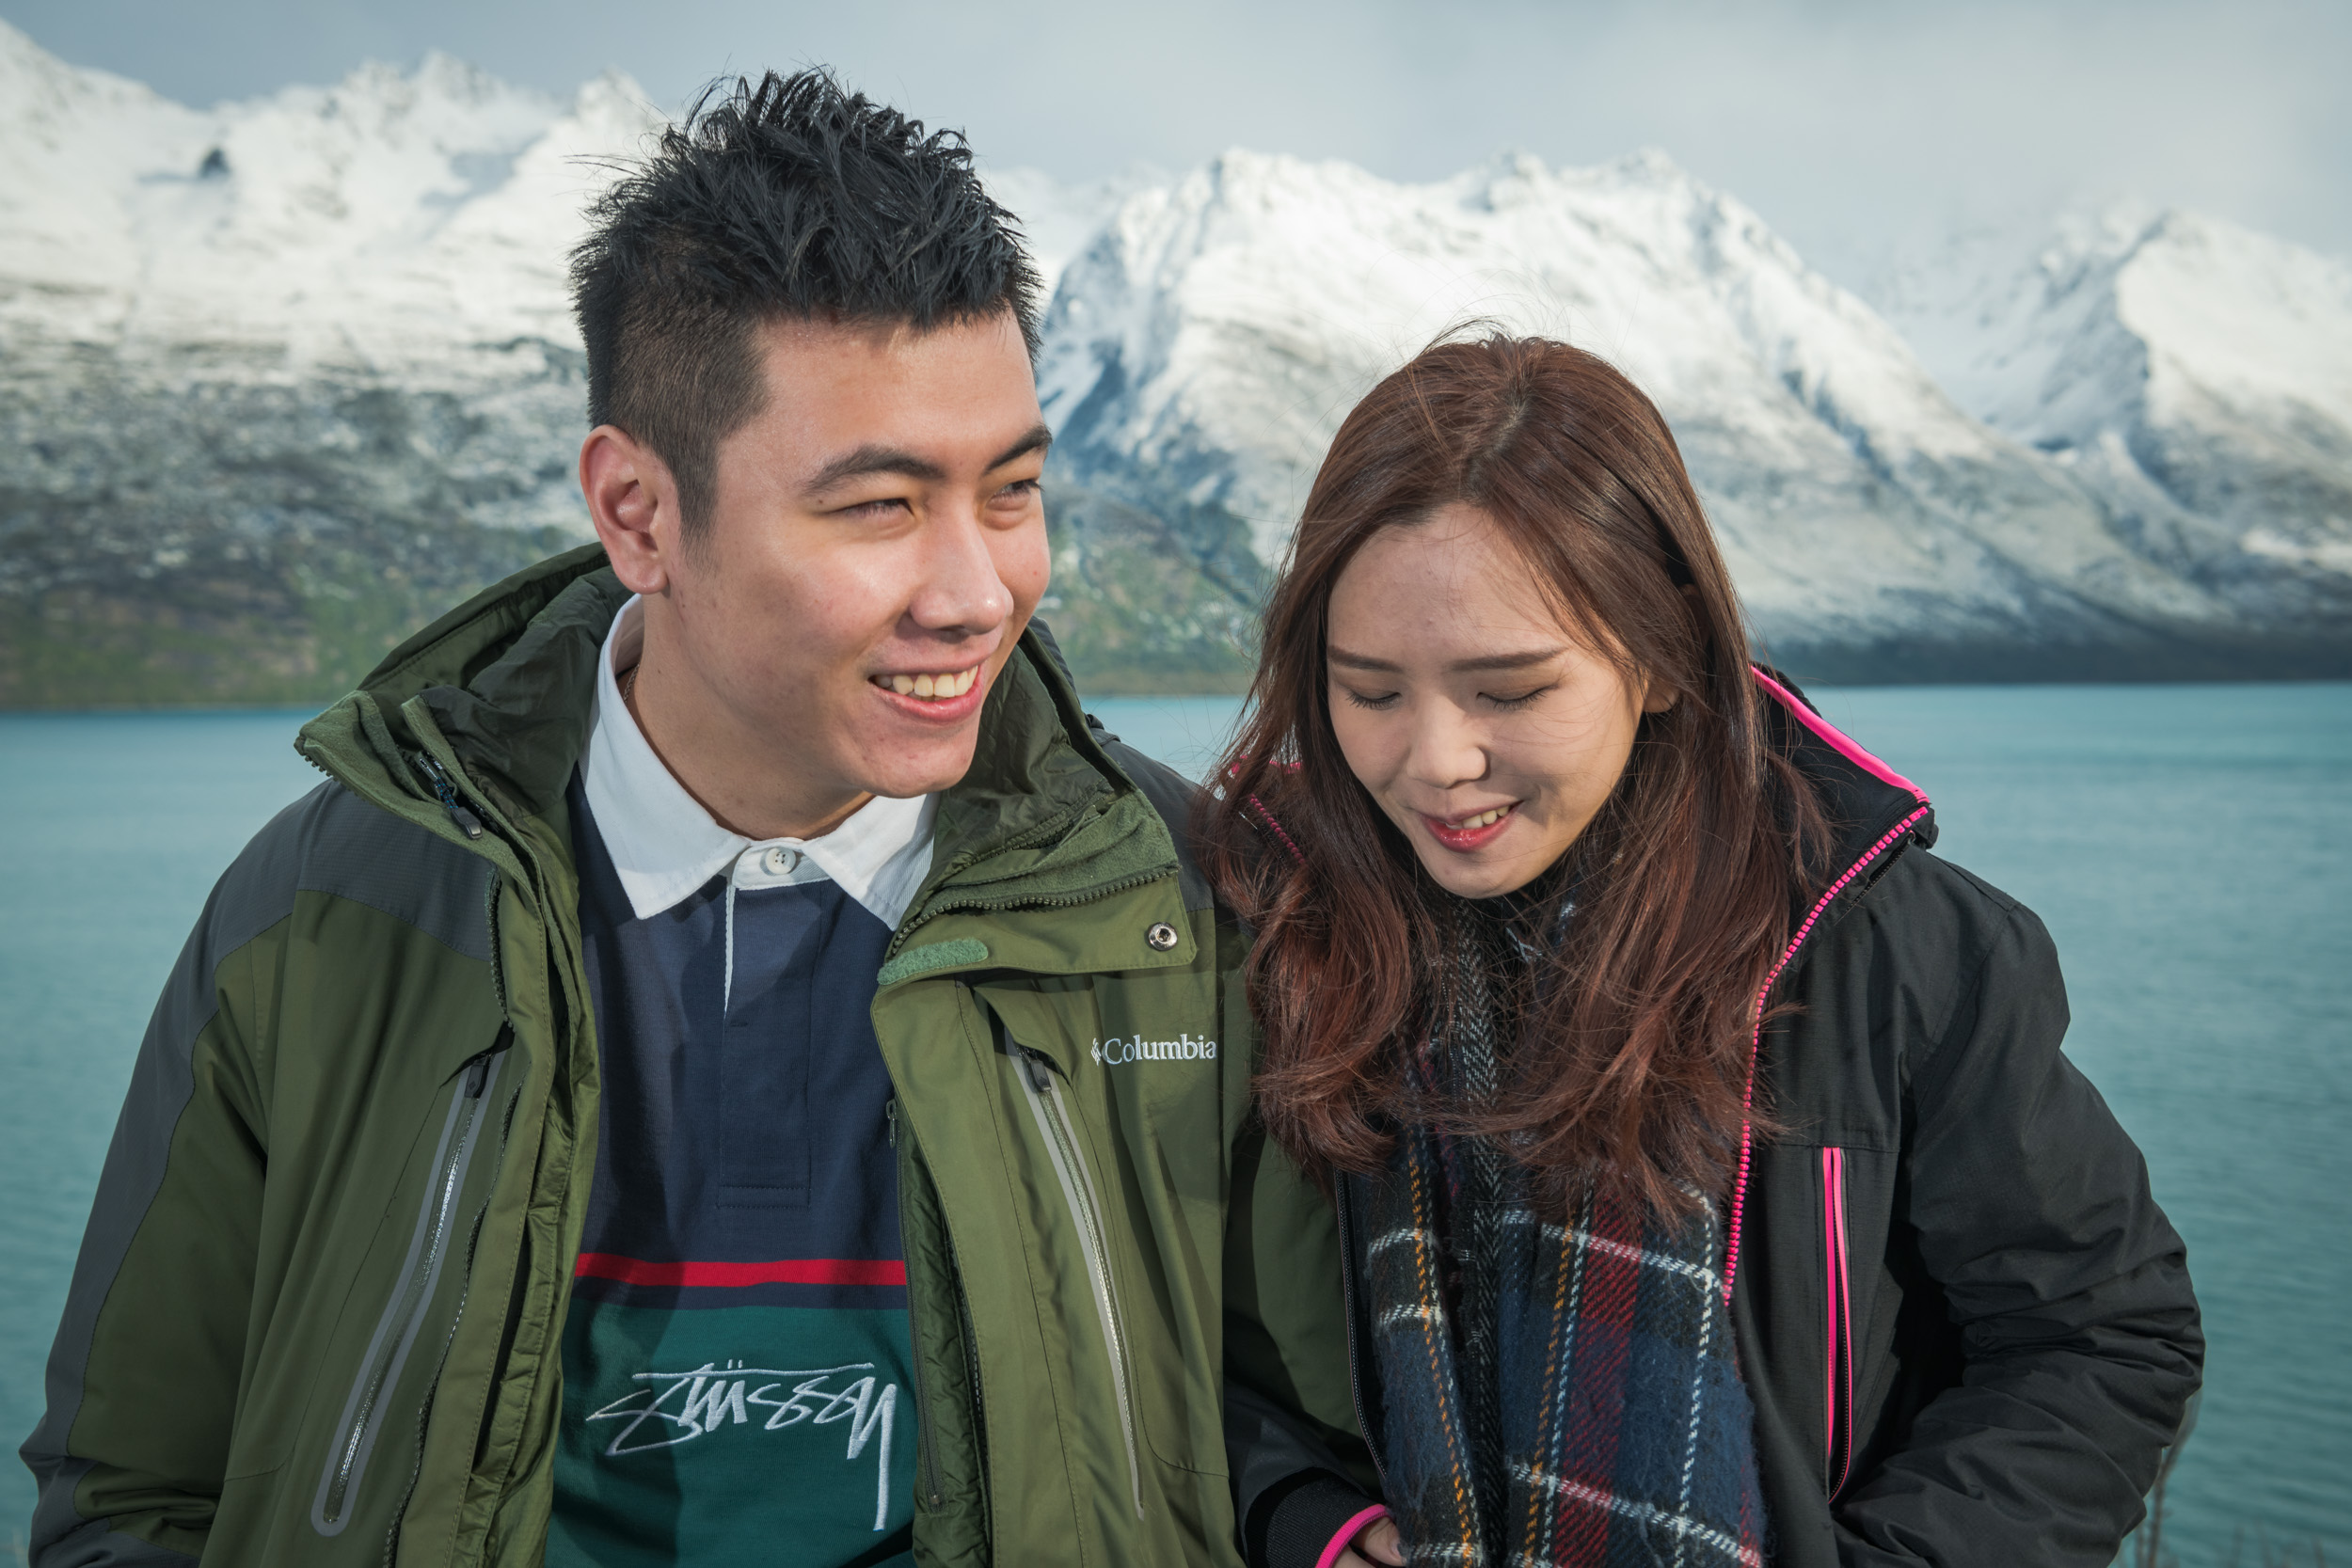 Professional Couples Photography Shoots - New Zealand